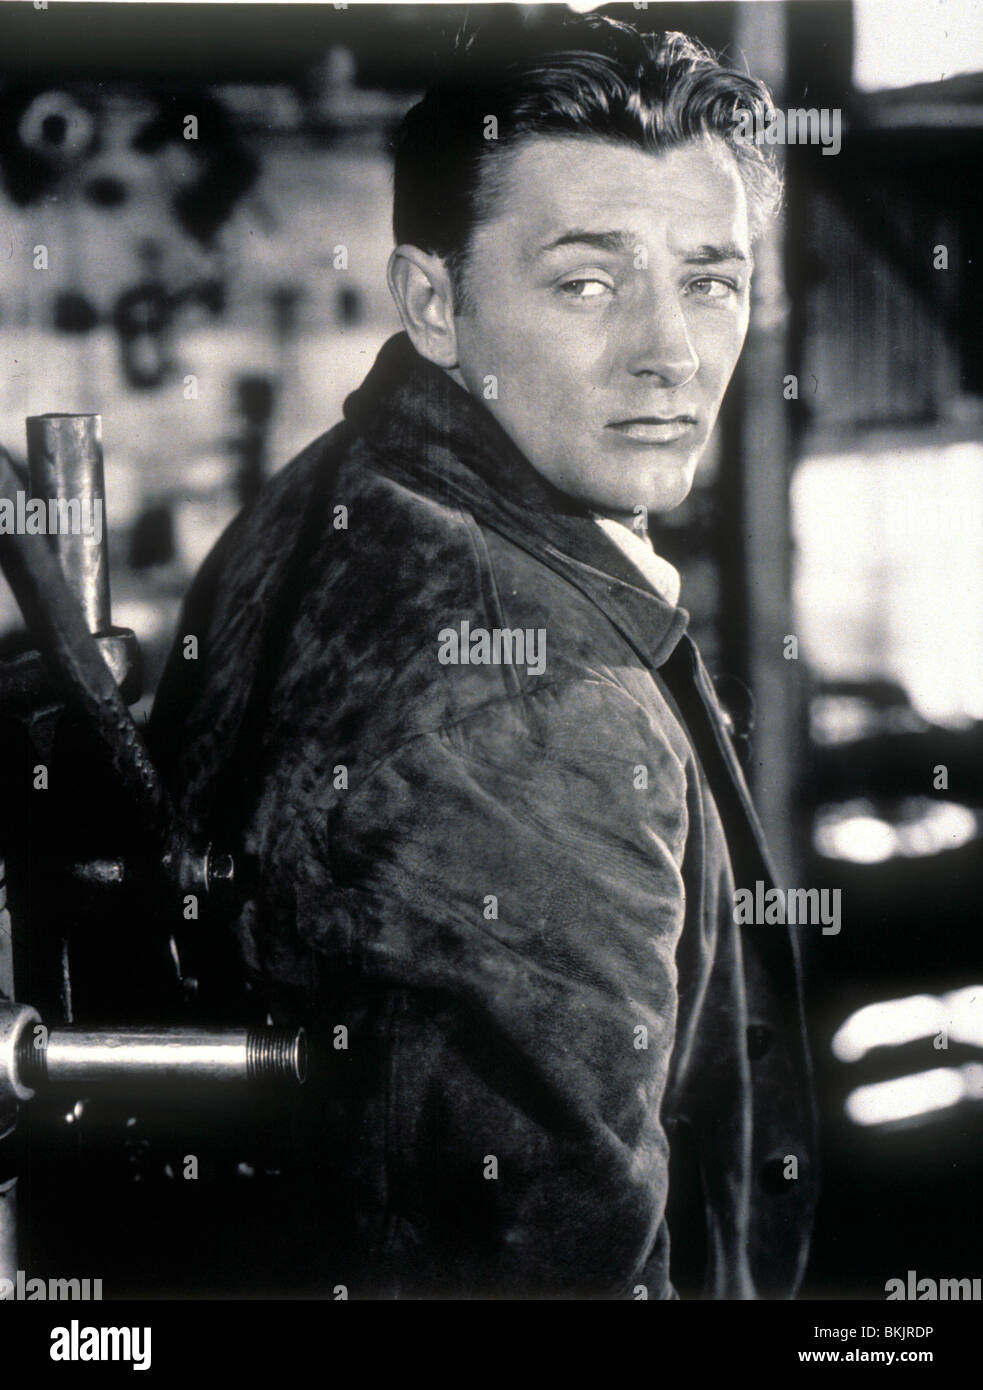 ROBERT MITCHUM O/S 'OUT OF THE PAST' (1947) RBMH 012 - Stock Image